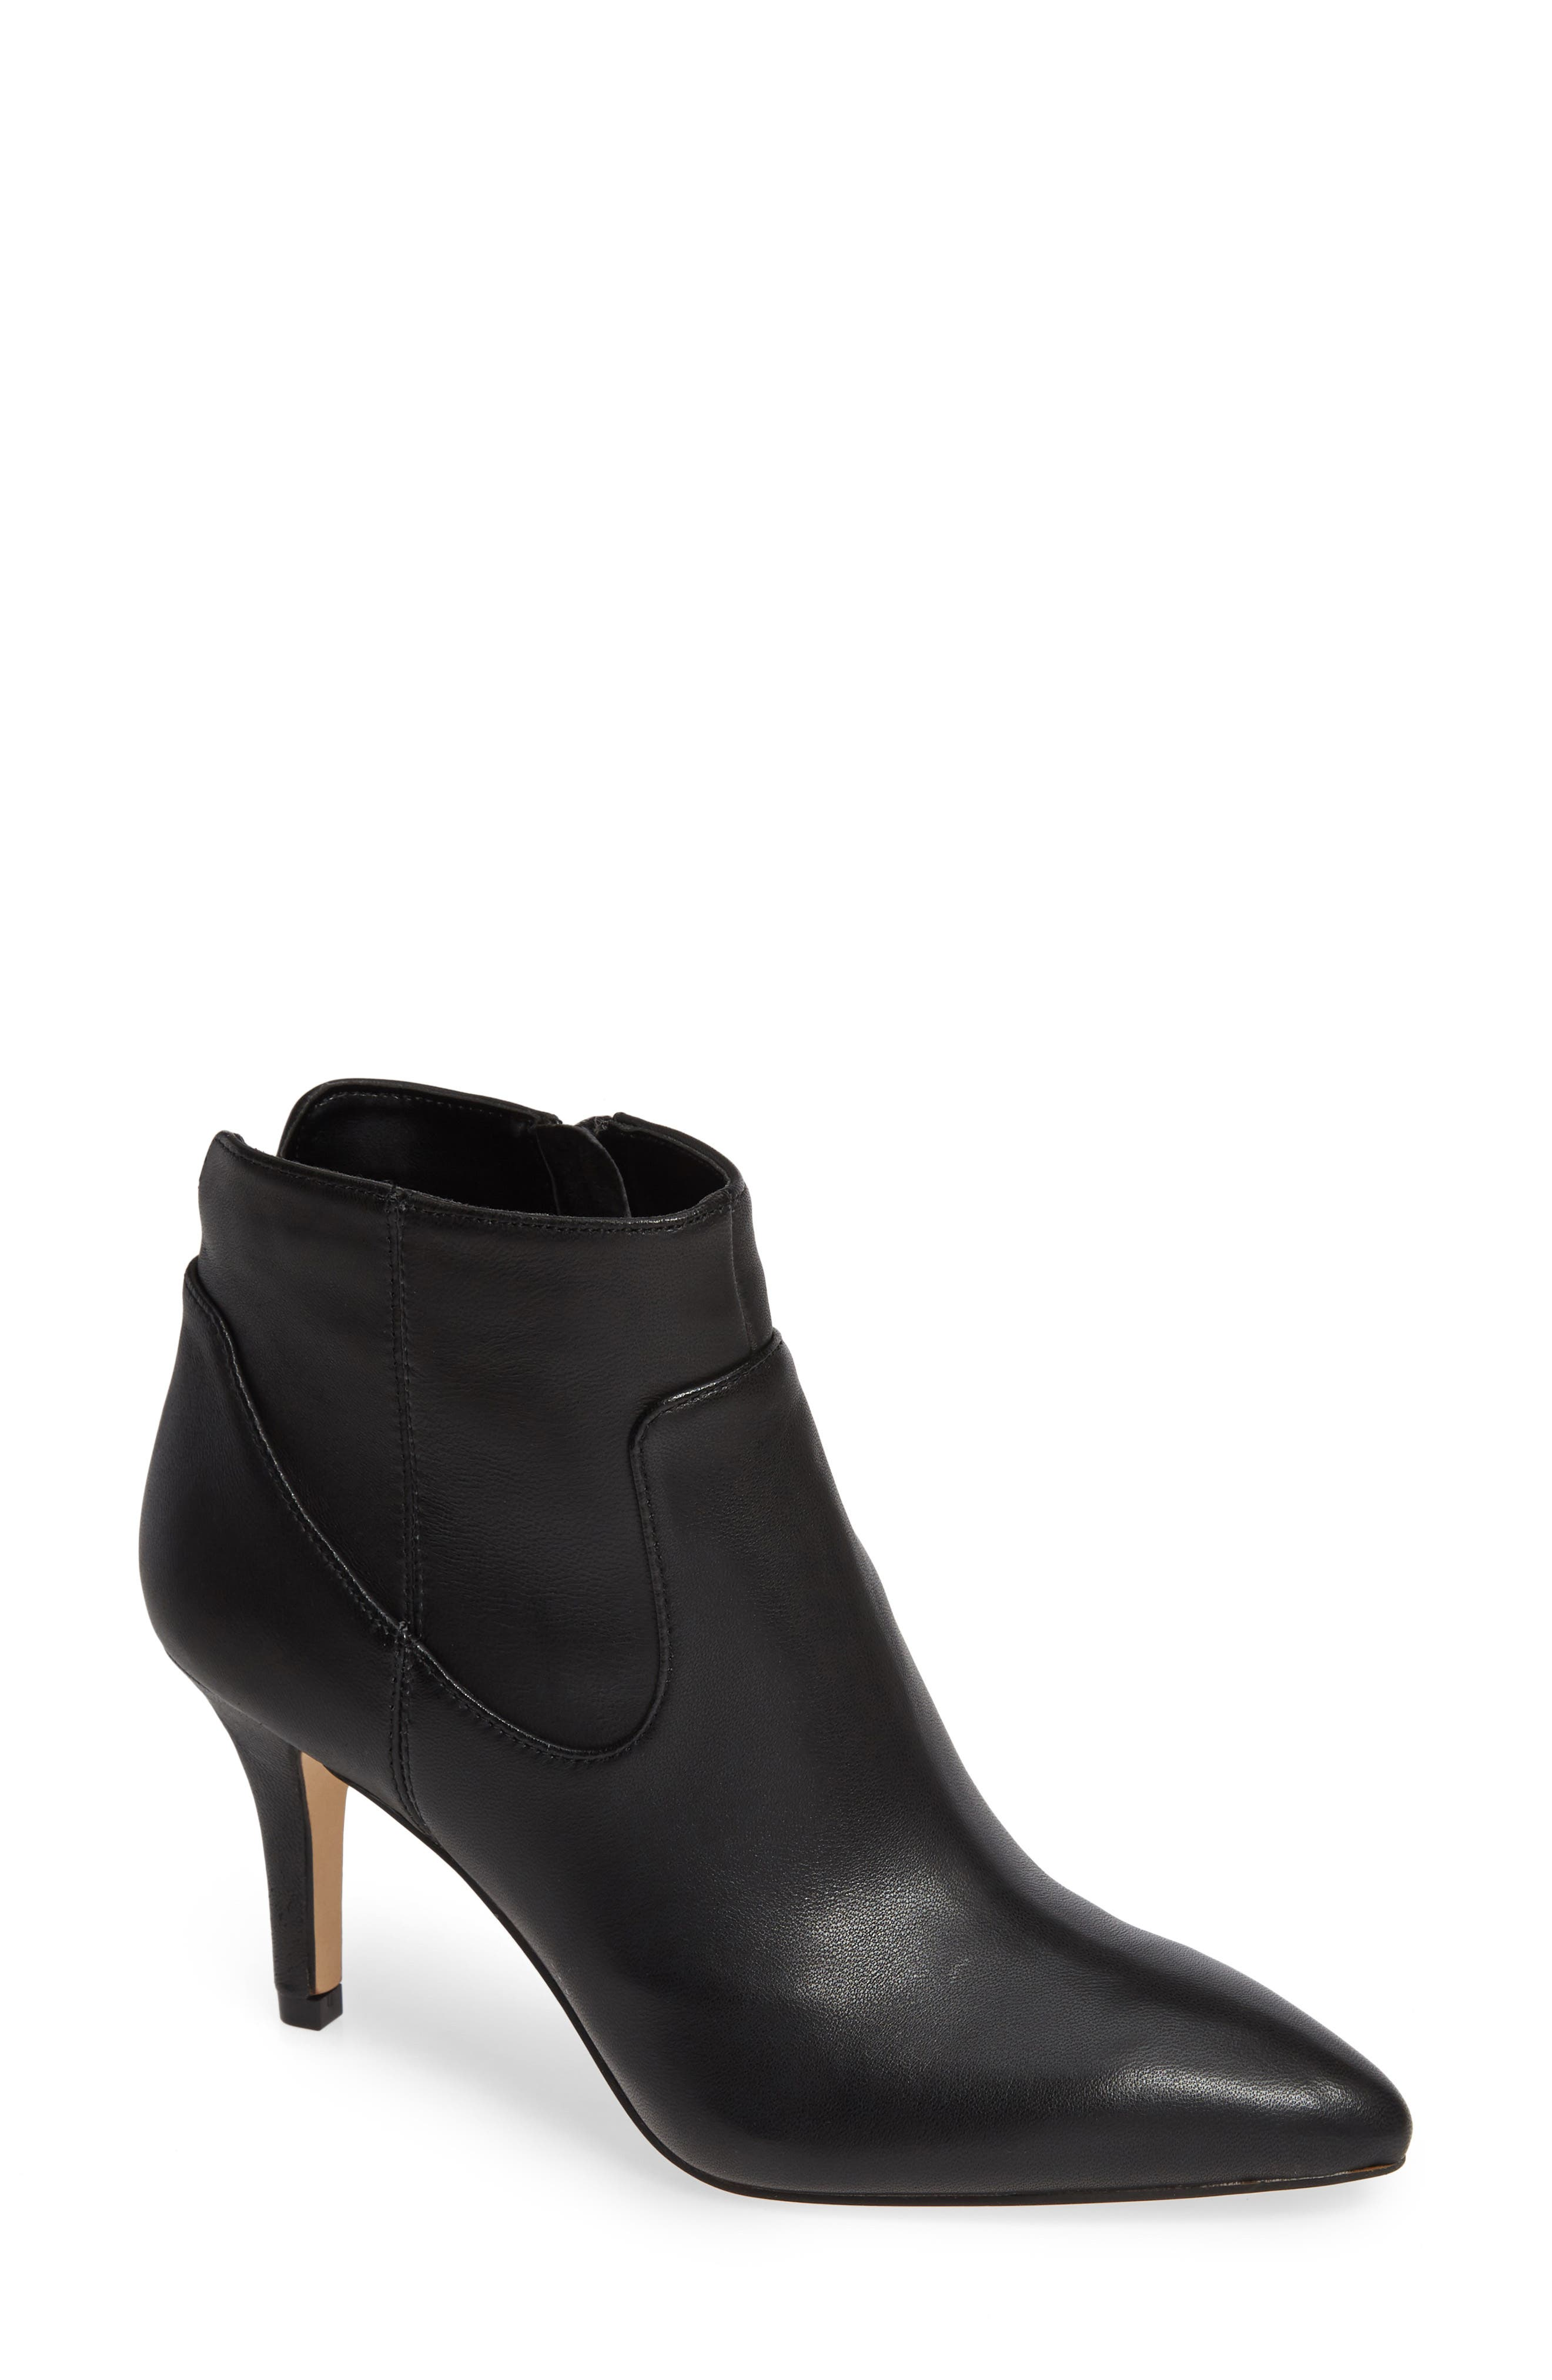 SOLE SOCIETY,                             Raphaela Bootie,                             Main thumbnail 1, color,                             BLACK LEATHER